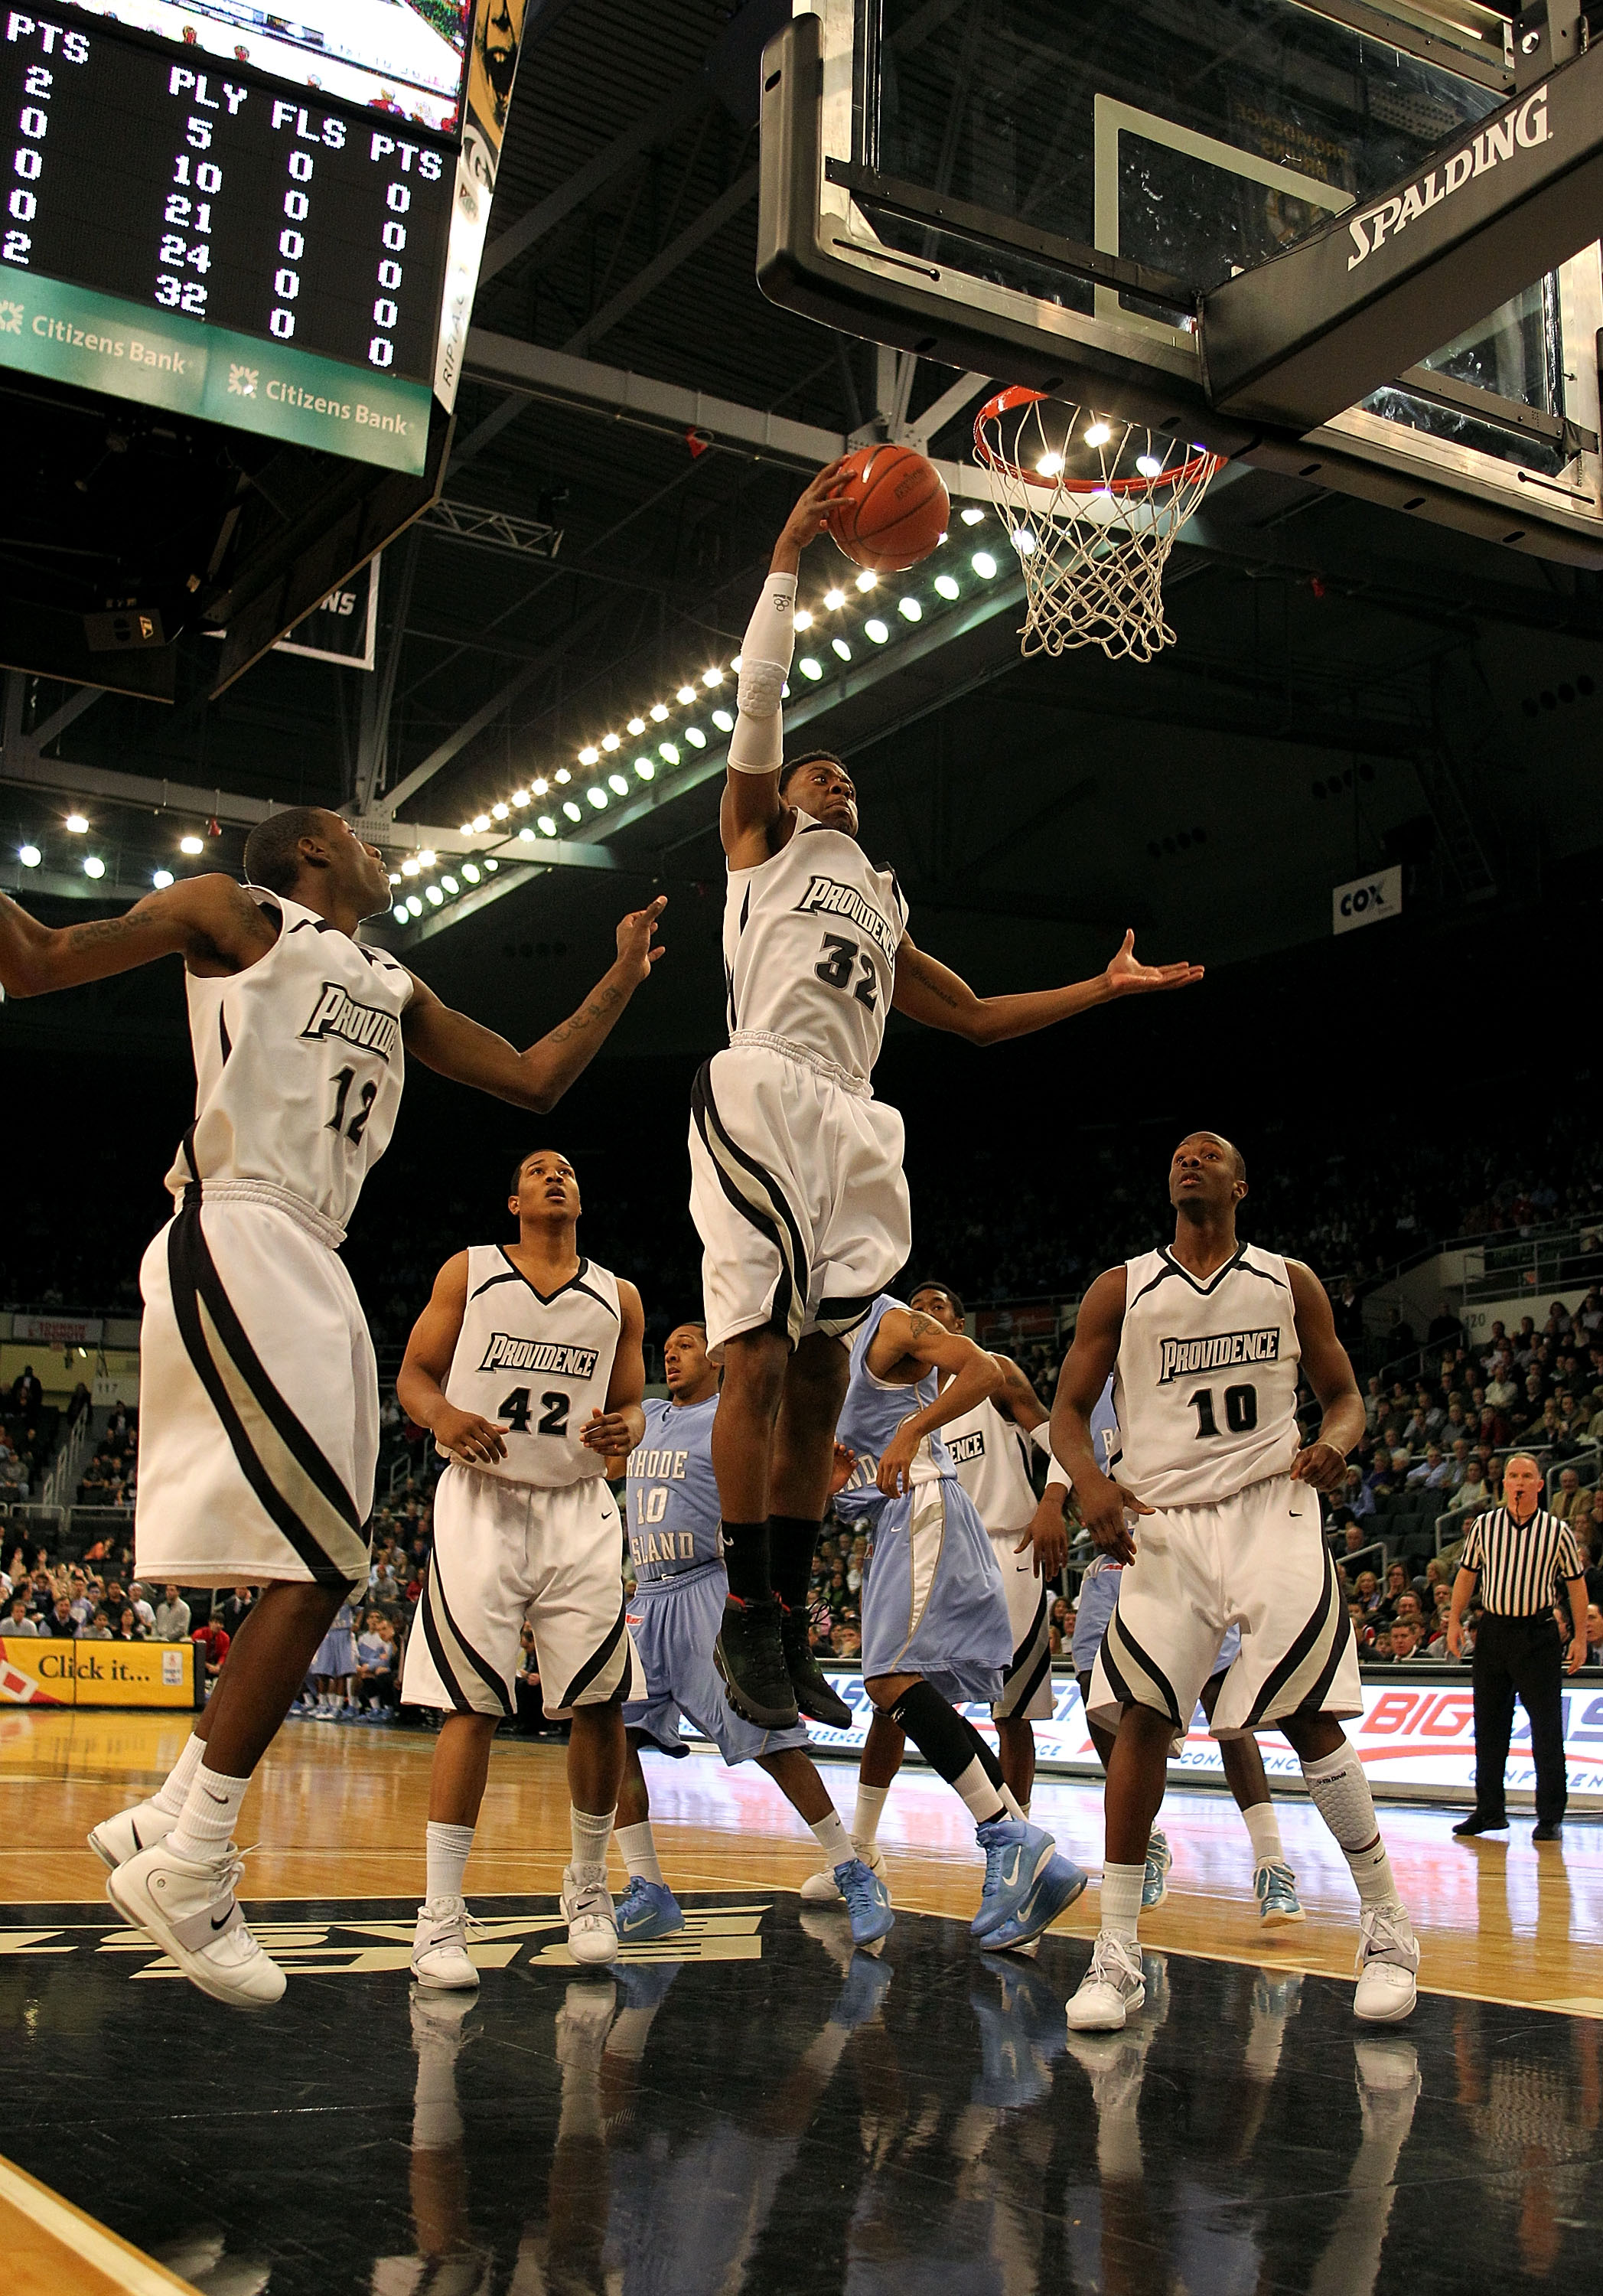 PROVIDENCE, RI - DECEMBER 04:  Vincent Council #32 of the Providence Friars controls a rebound against the Rhode Island Rams at the Dunkin' Donuts Center on December 4, 2010 in Providence, Rhode Island.  (Photo by Chris Chambers/Getty Images)